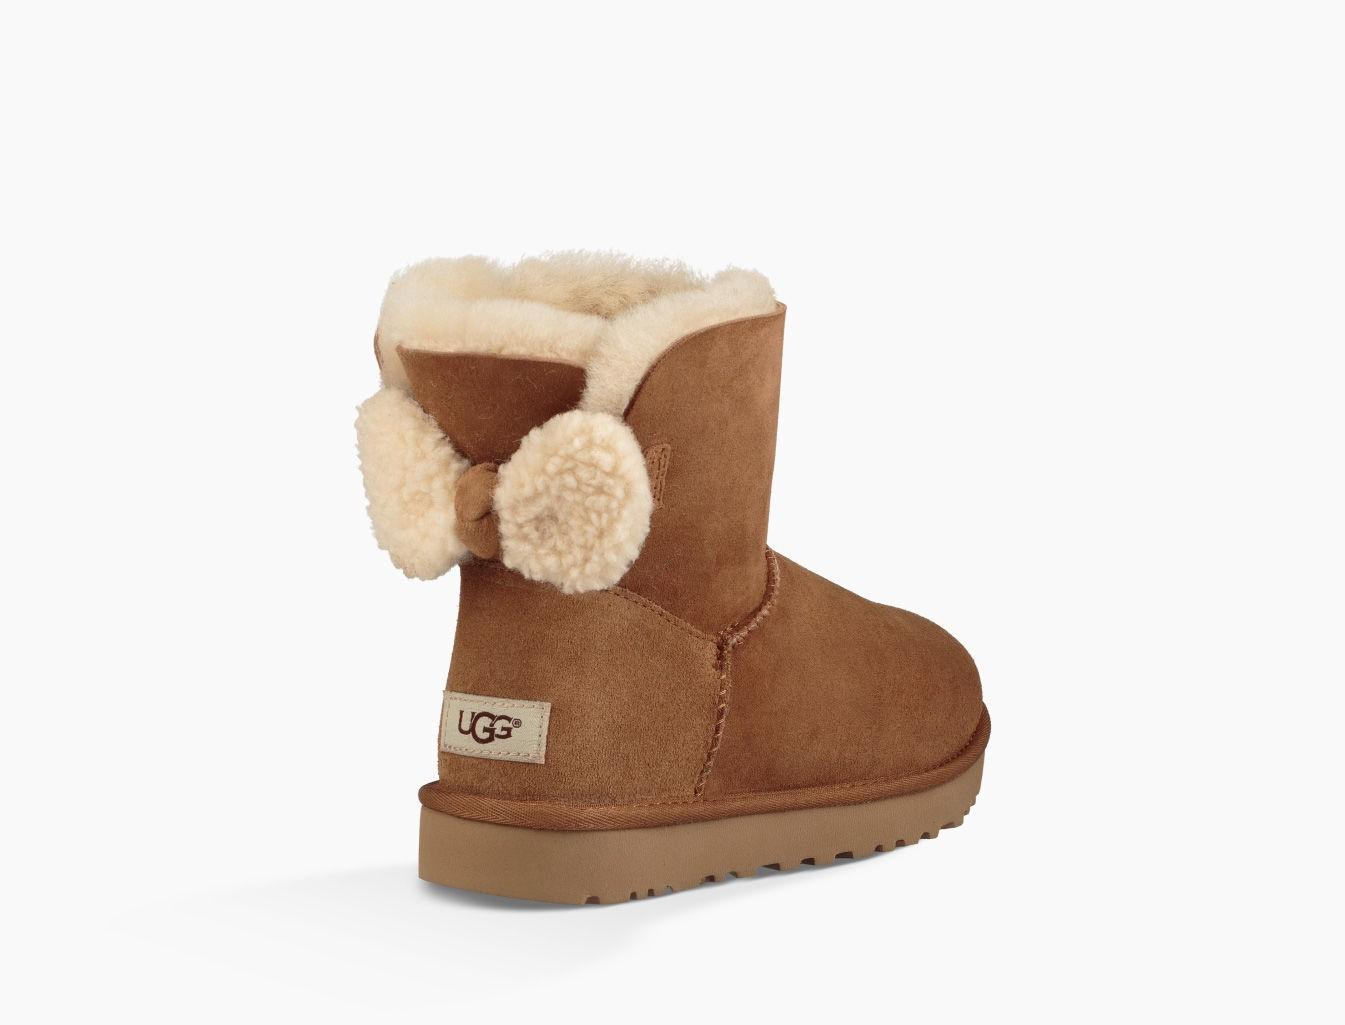 b03af7d249a Stivali Arielle Mini Bow In Shearling Beige in Chestnut Suede